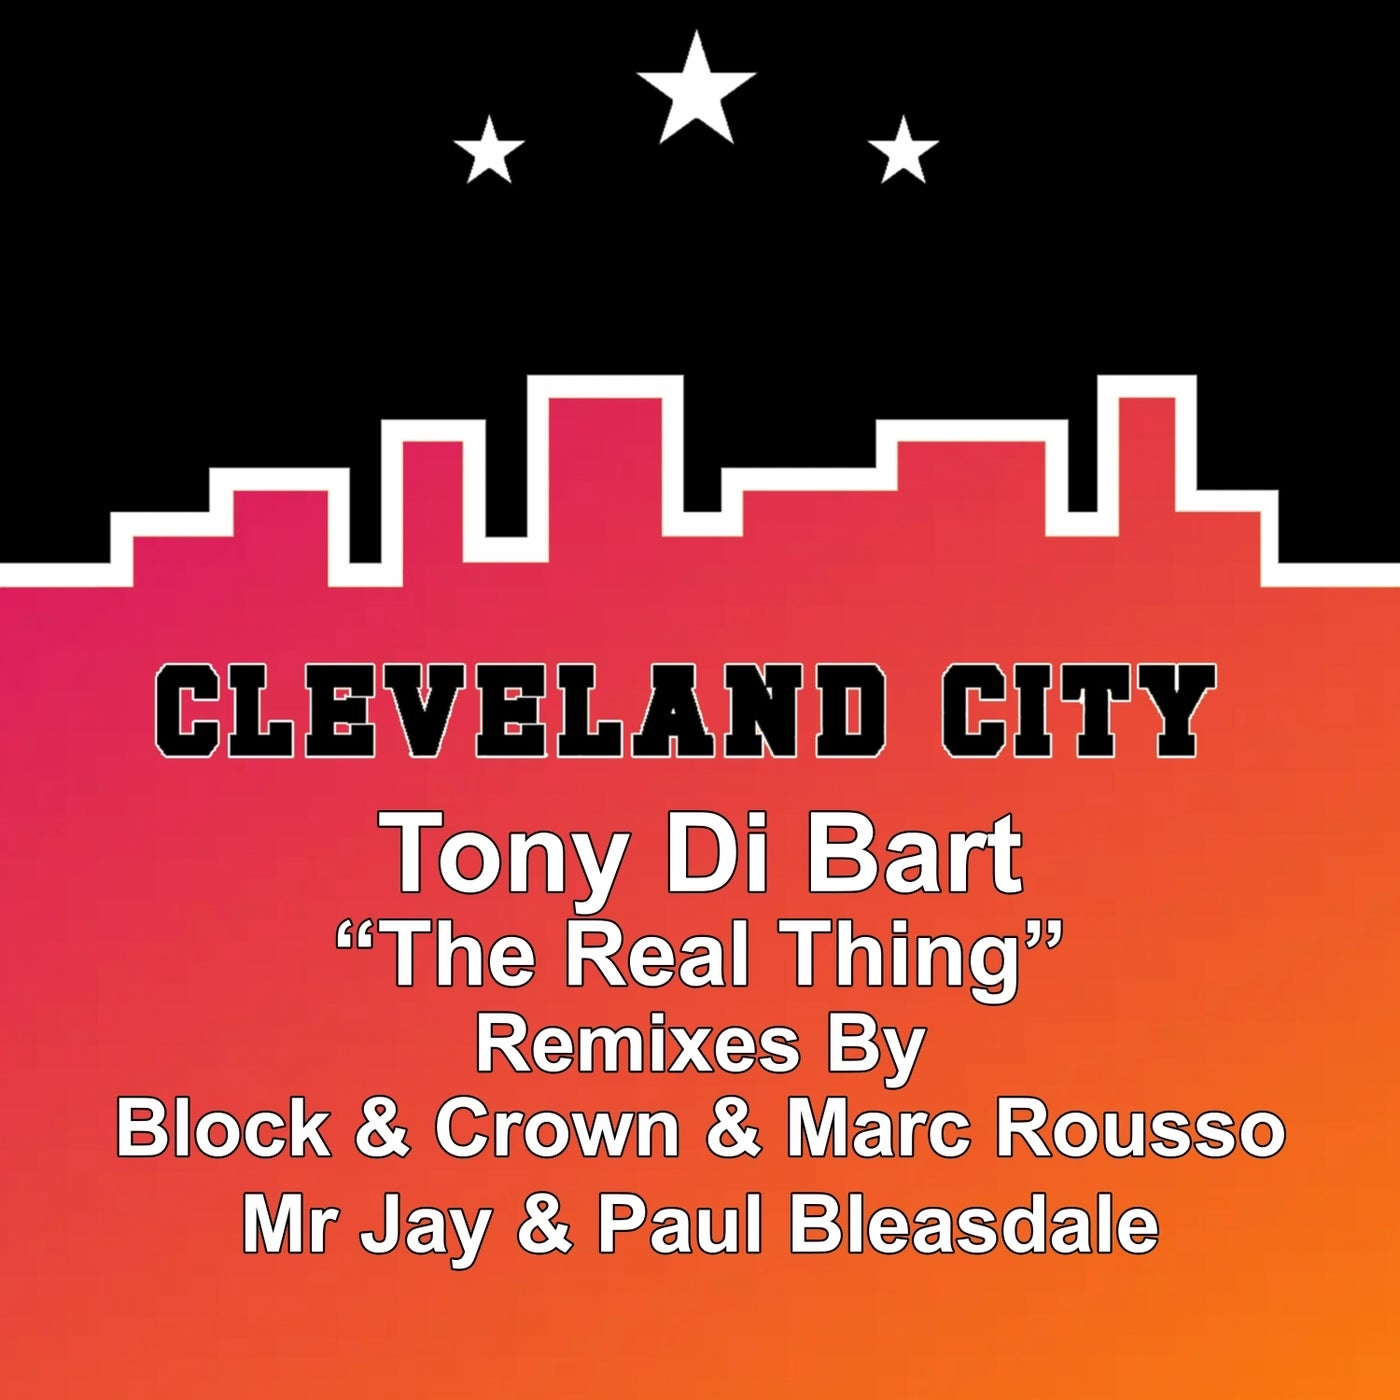 The Real Thing (Block & Crown & Marc Rousso Remix)